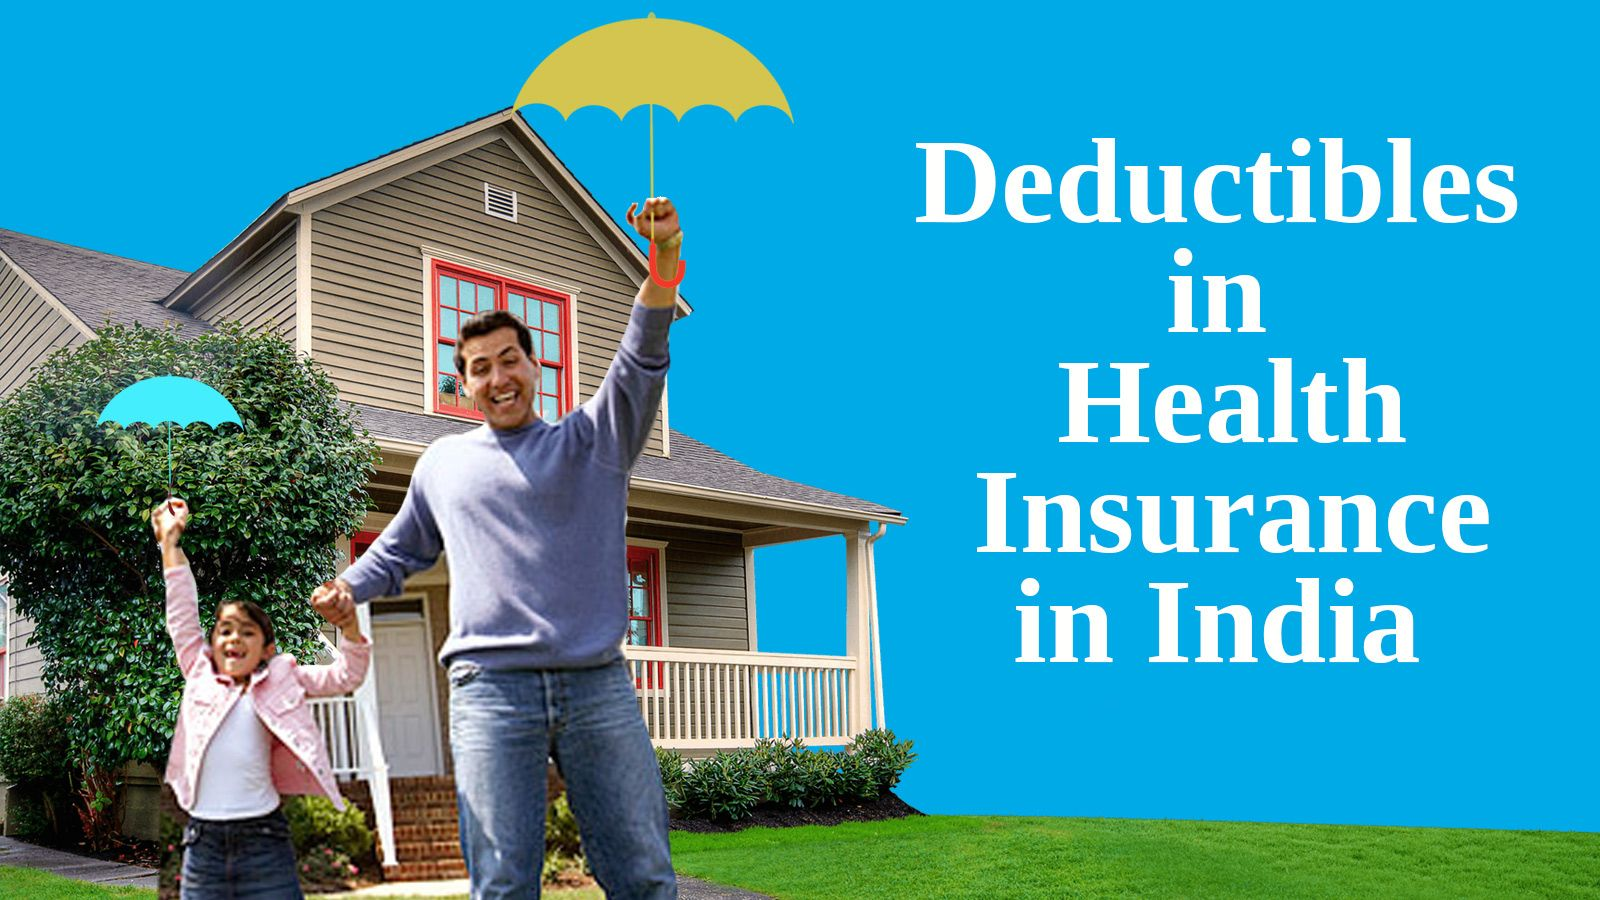 Deductible is the certain amount of money that a policy